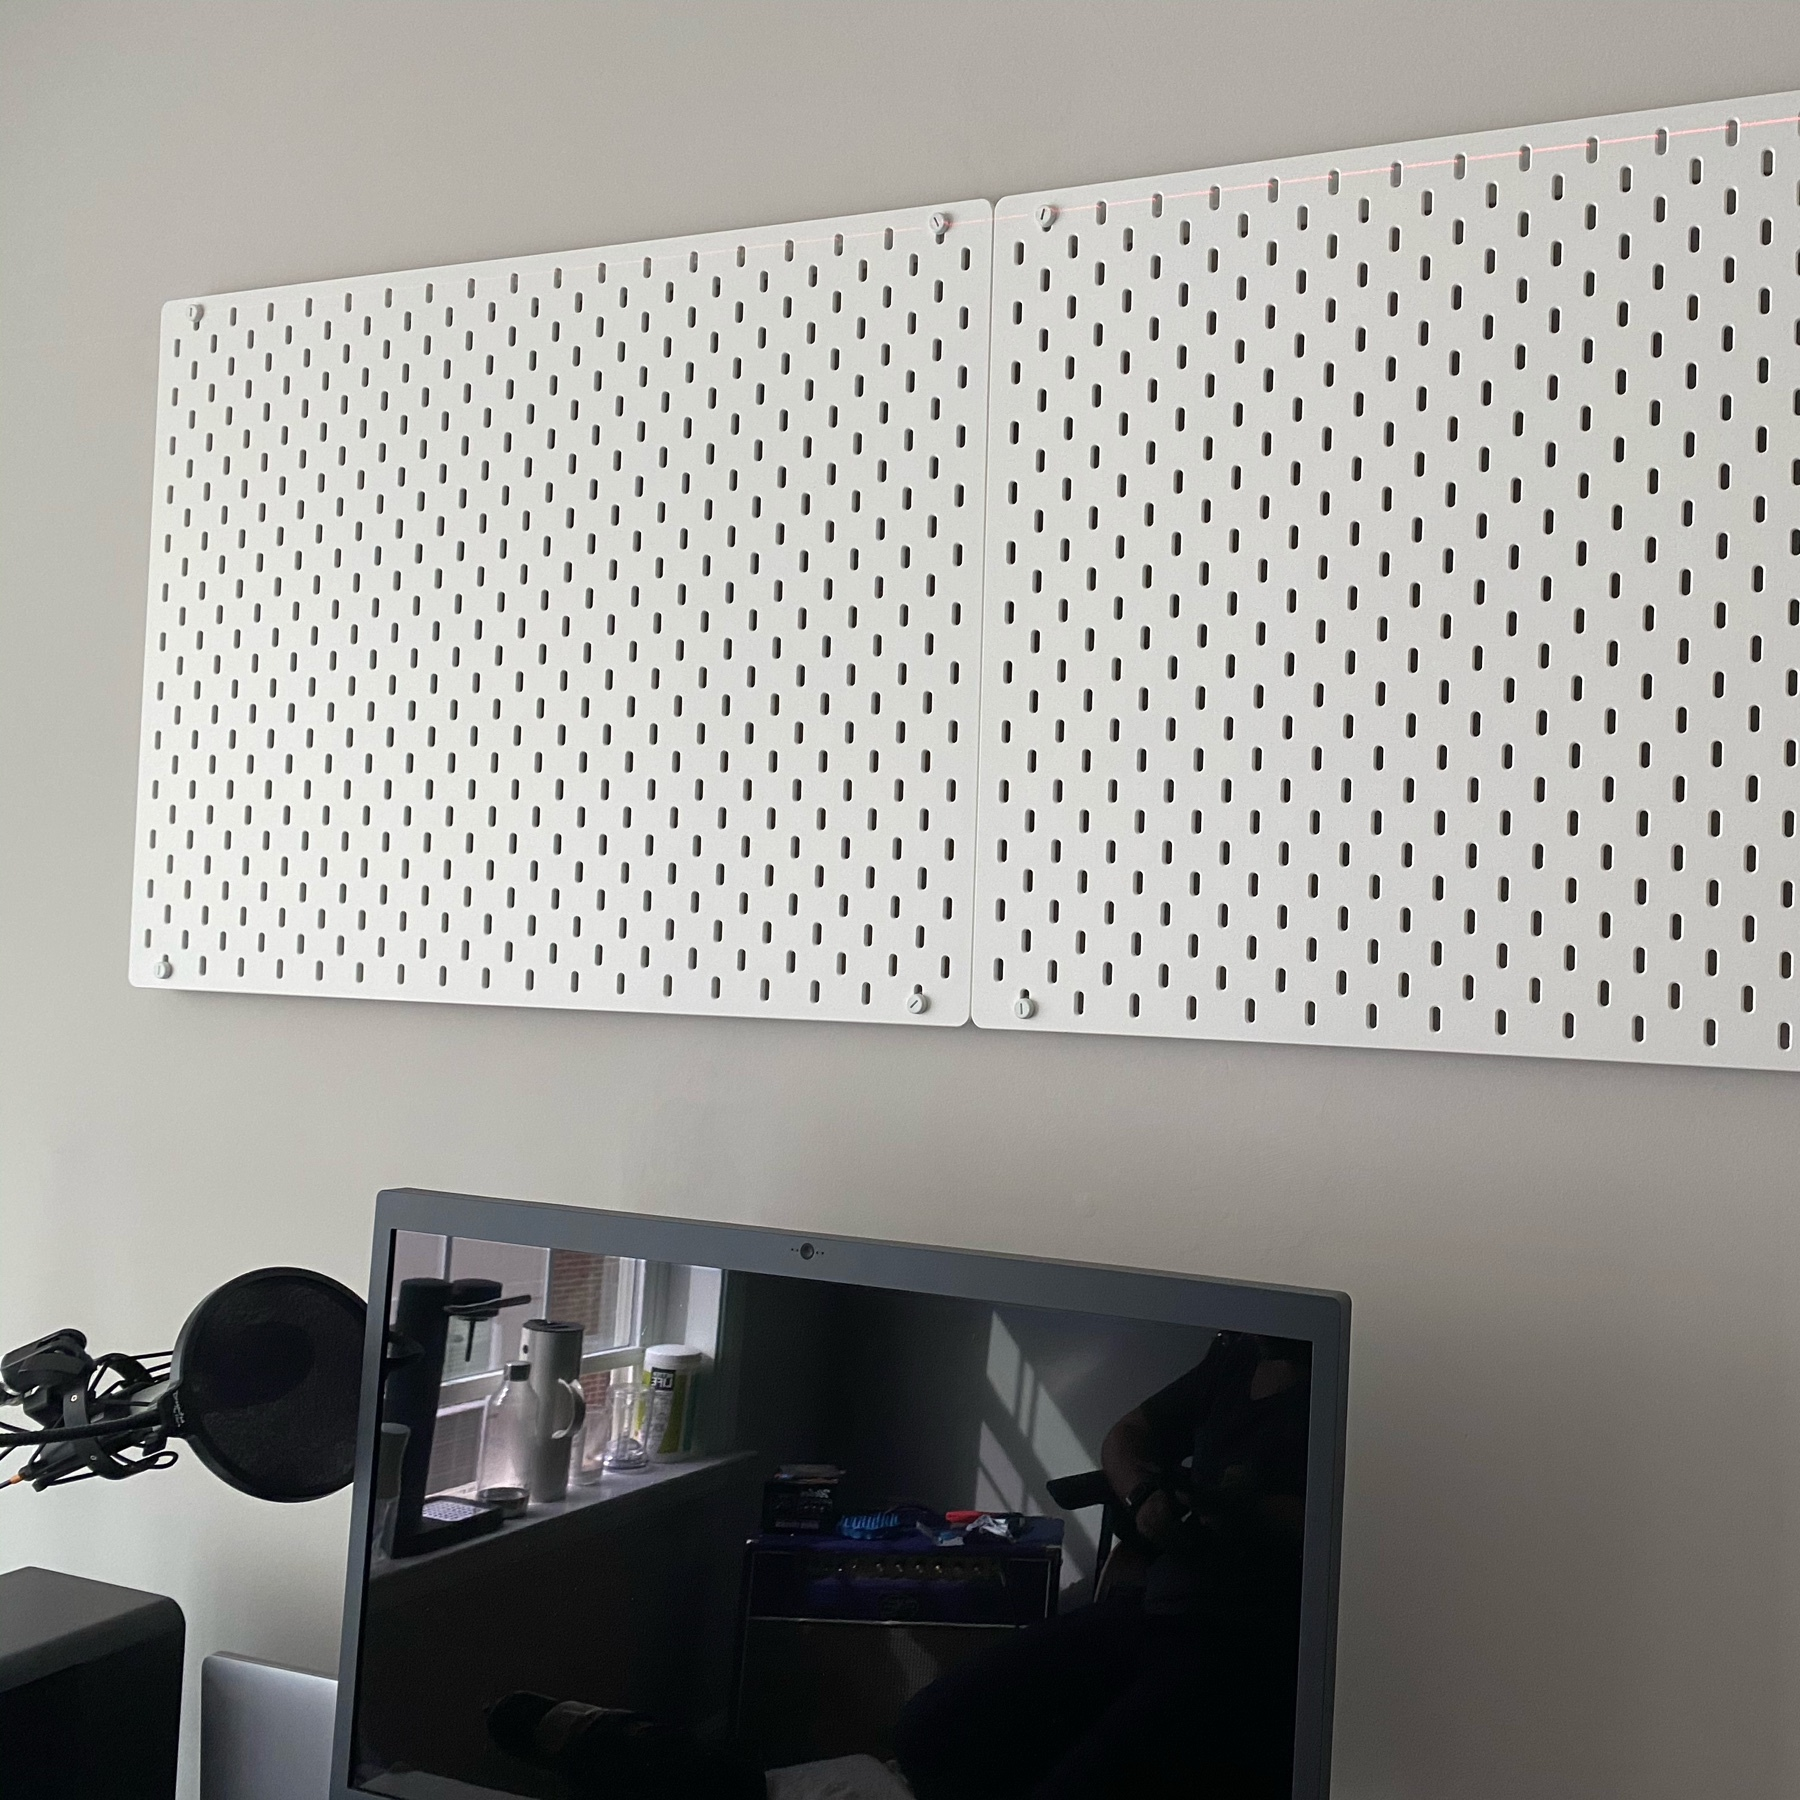 Two white IKEA Skadis pegboards mounted above my desk.